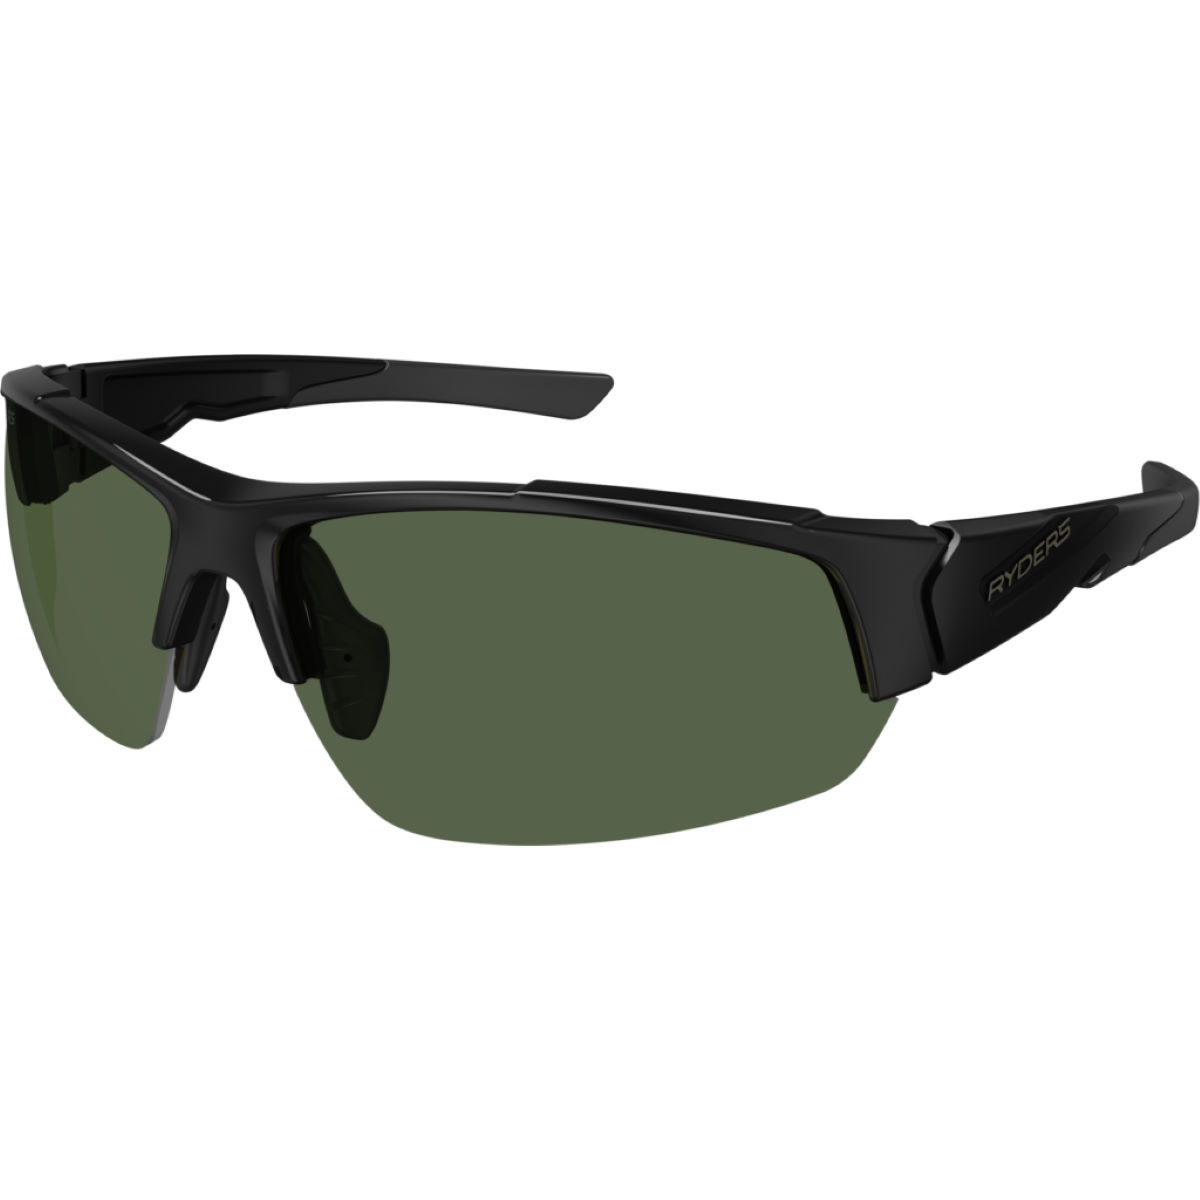 Ryders Eyewear Strider Velo-Polar Anti-Fog Sunglasses - Gafas de sol